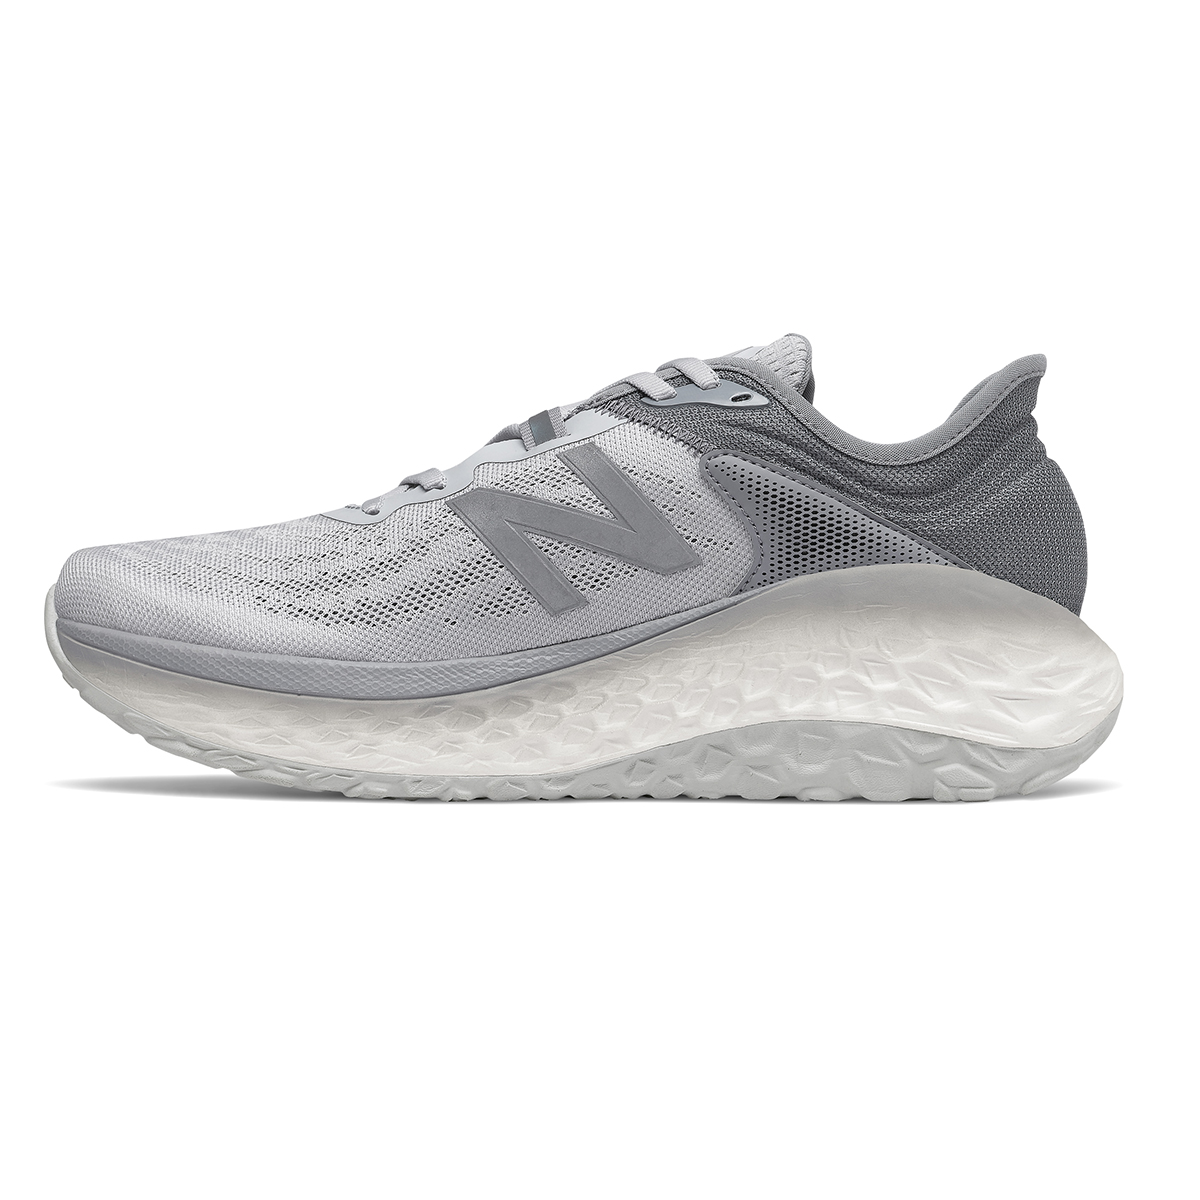 Men's New Balance Fresh Foam More V2 Running Shoe - Color: Light Aluminum - Size: 7 - Width: Wide, Light Aluminum, large, image 2